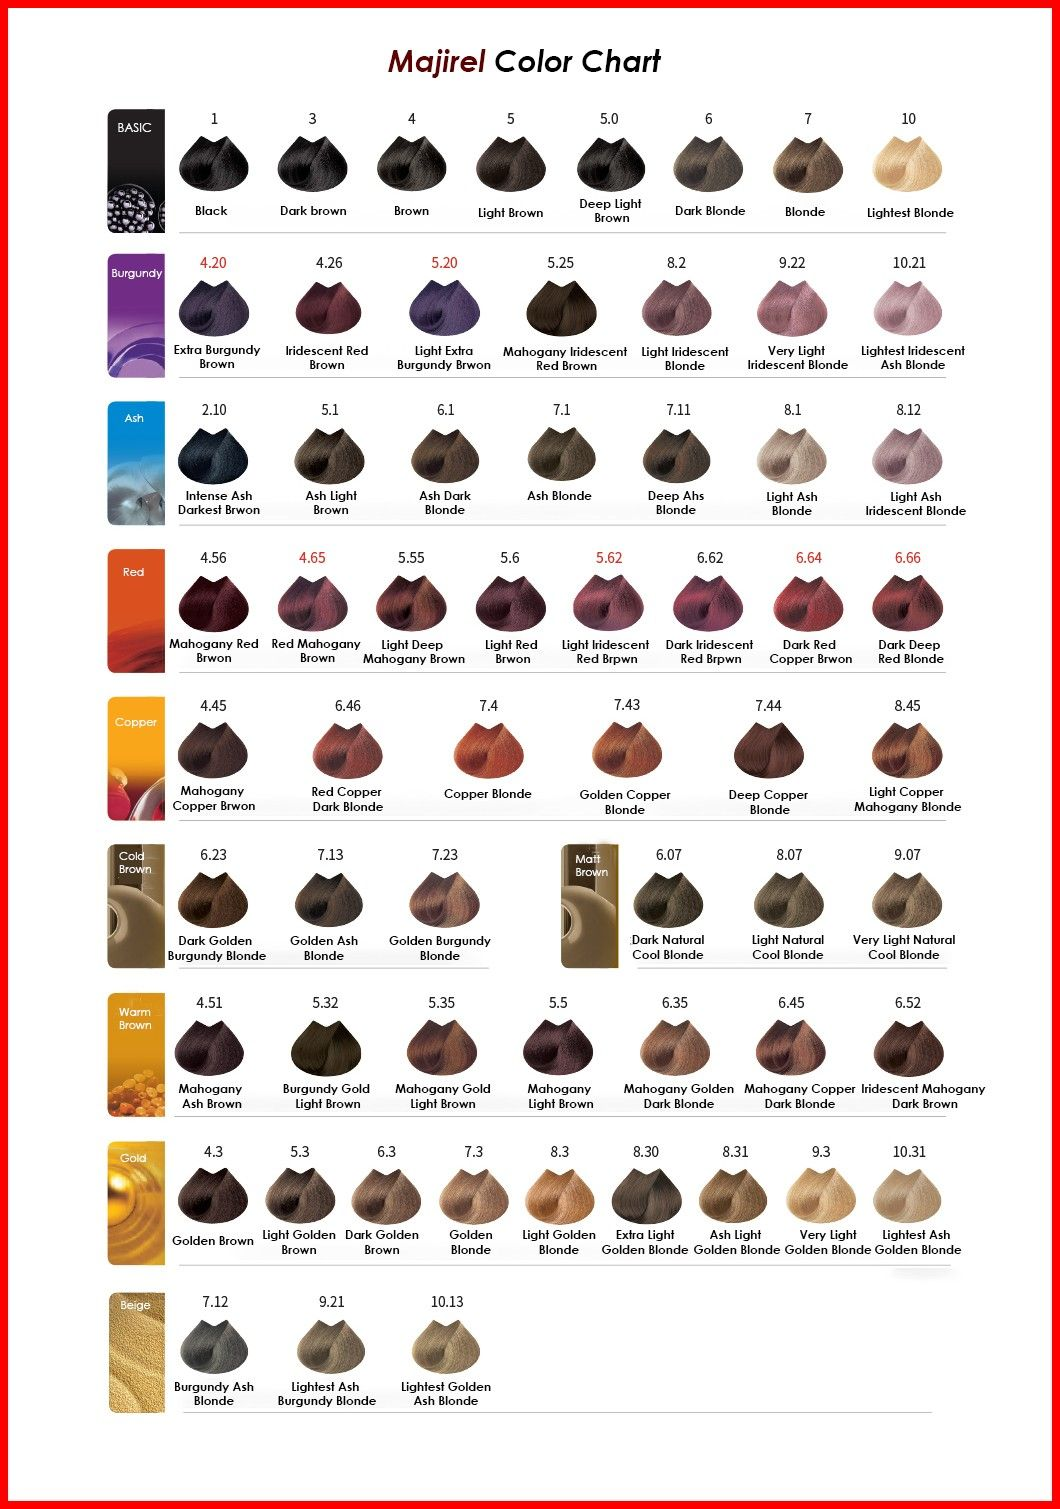 Loreal Dialight Chart 2020 Big 260 3 Kb Picture Loreal Hair Color Chart Hair Color Chart Professional Hair Color Chart